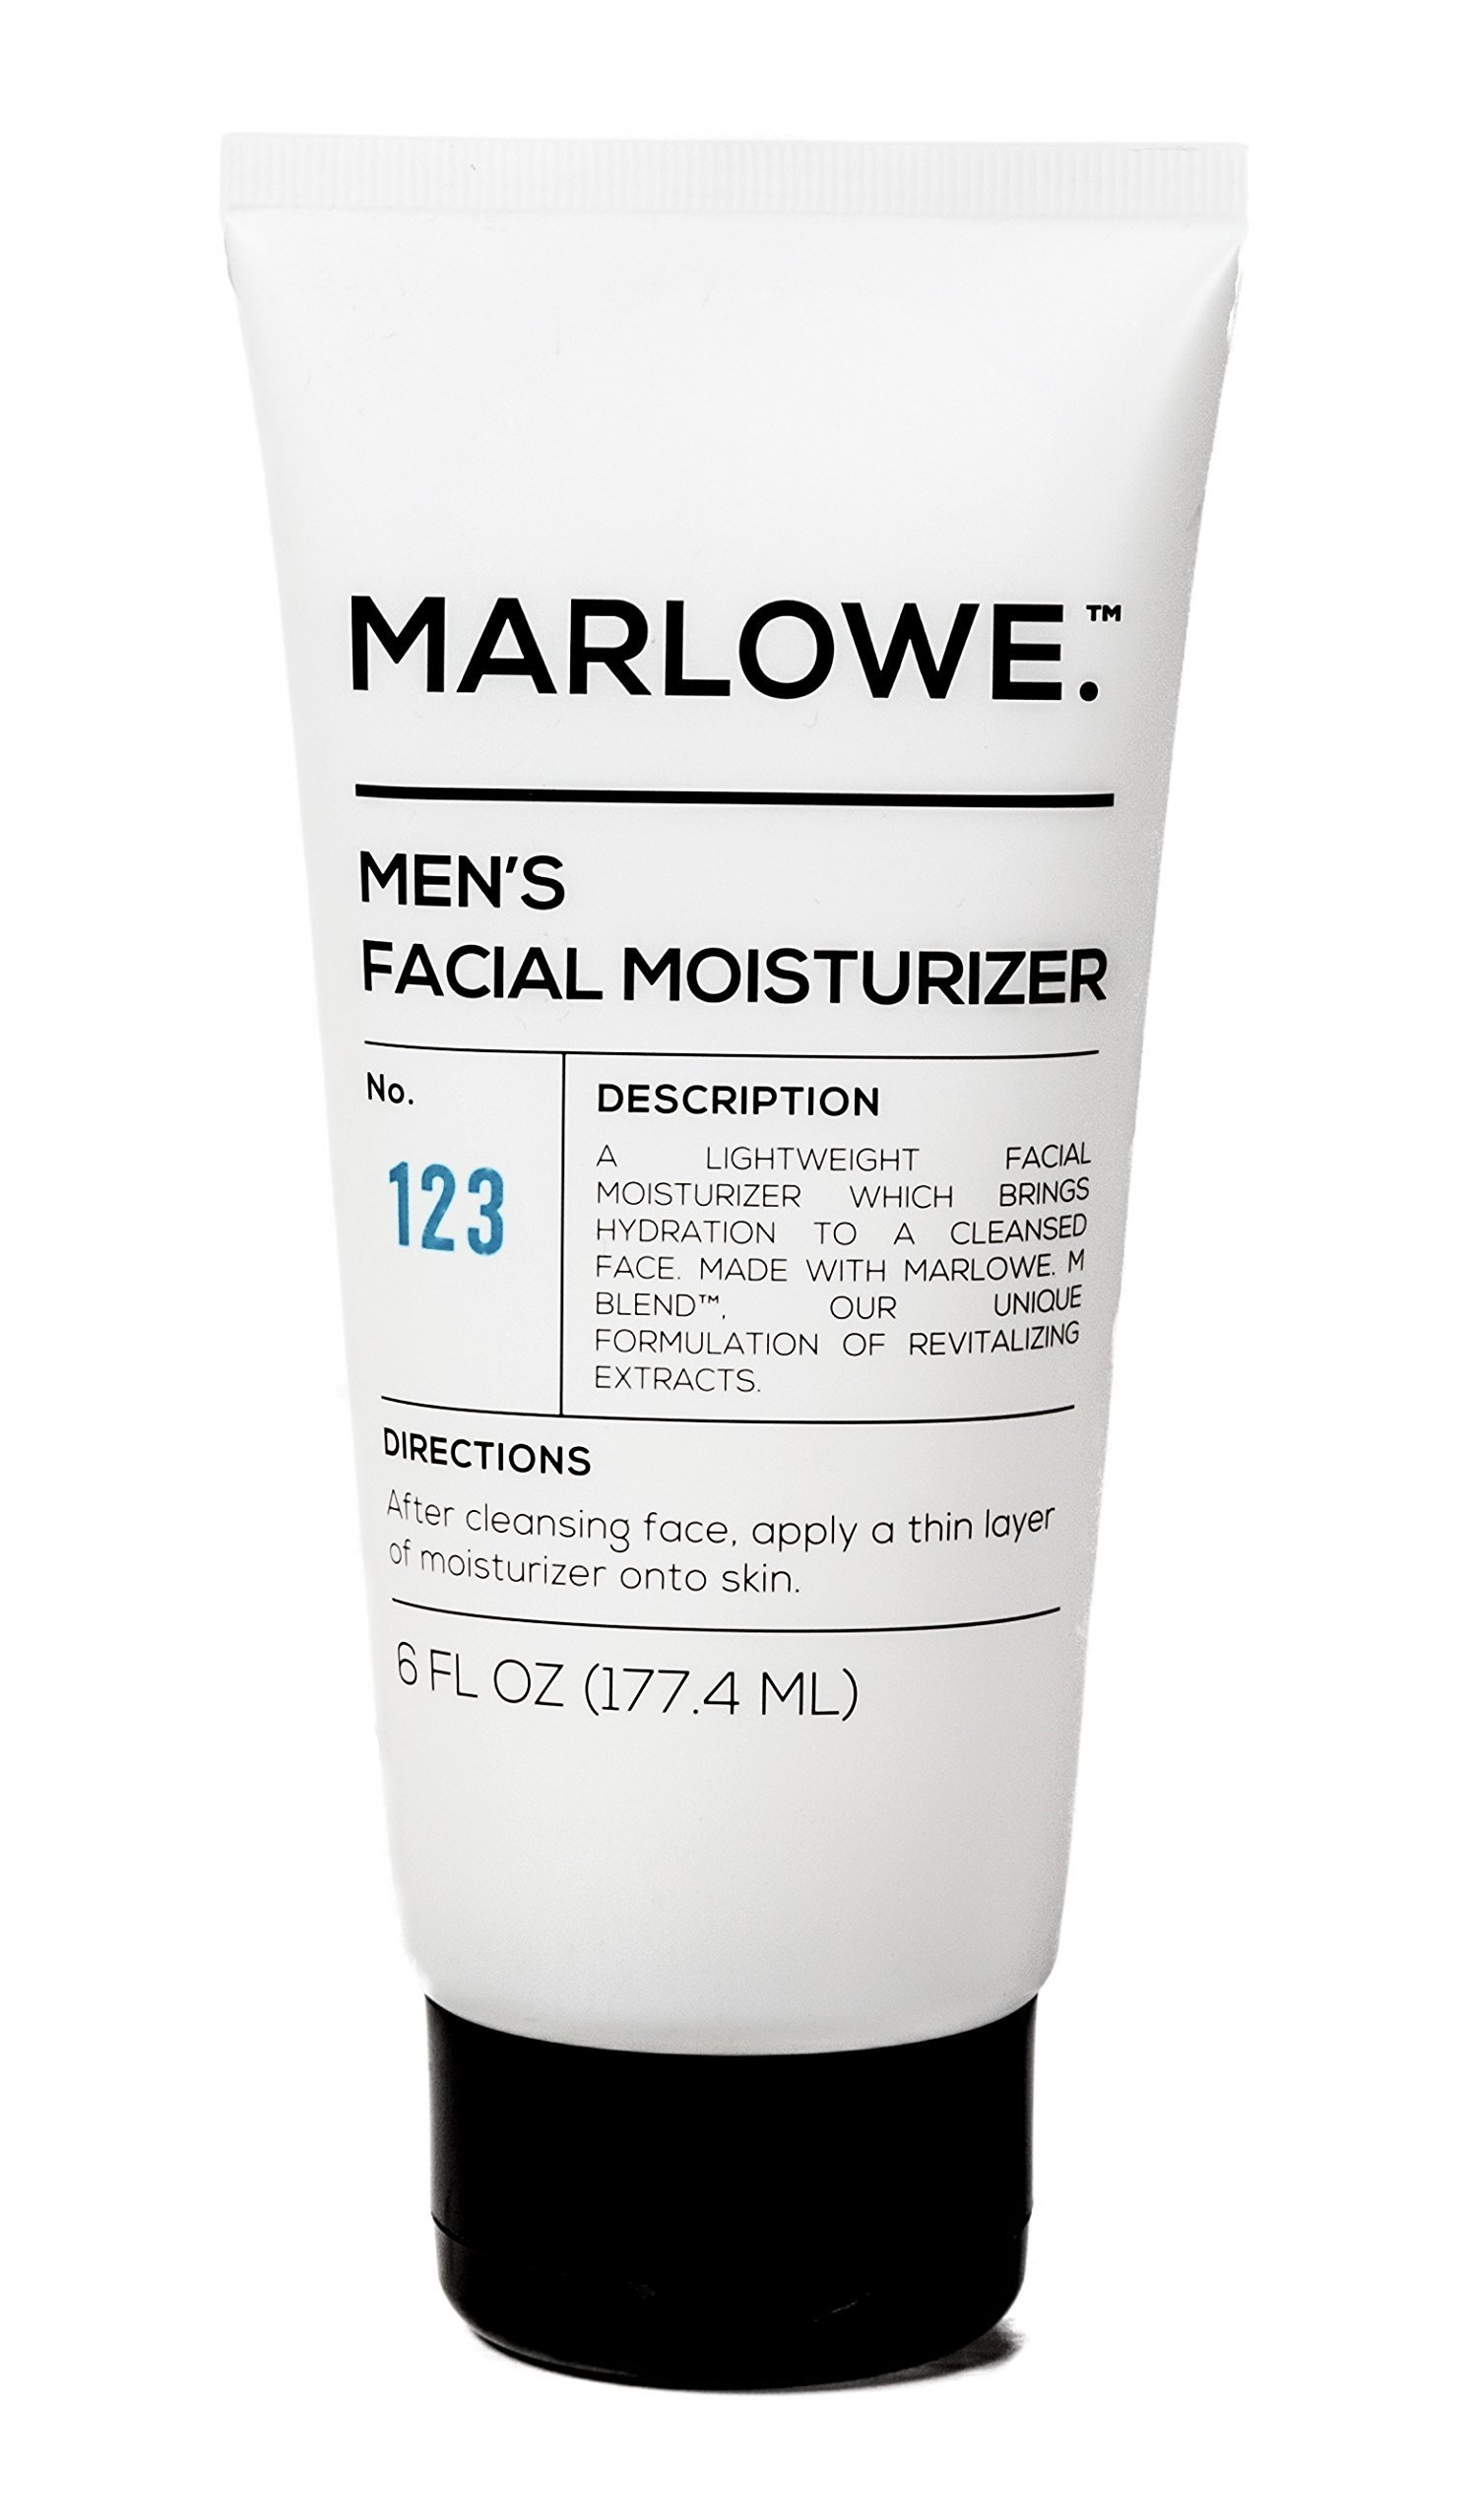 MARLOWE. No. 123 Men's Facial Moisturizer 6 oz | Lightweight Daily Face Lotion for Men | Best for Dry or Oily Skin | Made with Natural Ingredients & Anti-Aging Extracts by MARLOWE. M BLEND